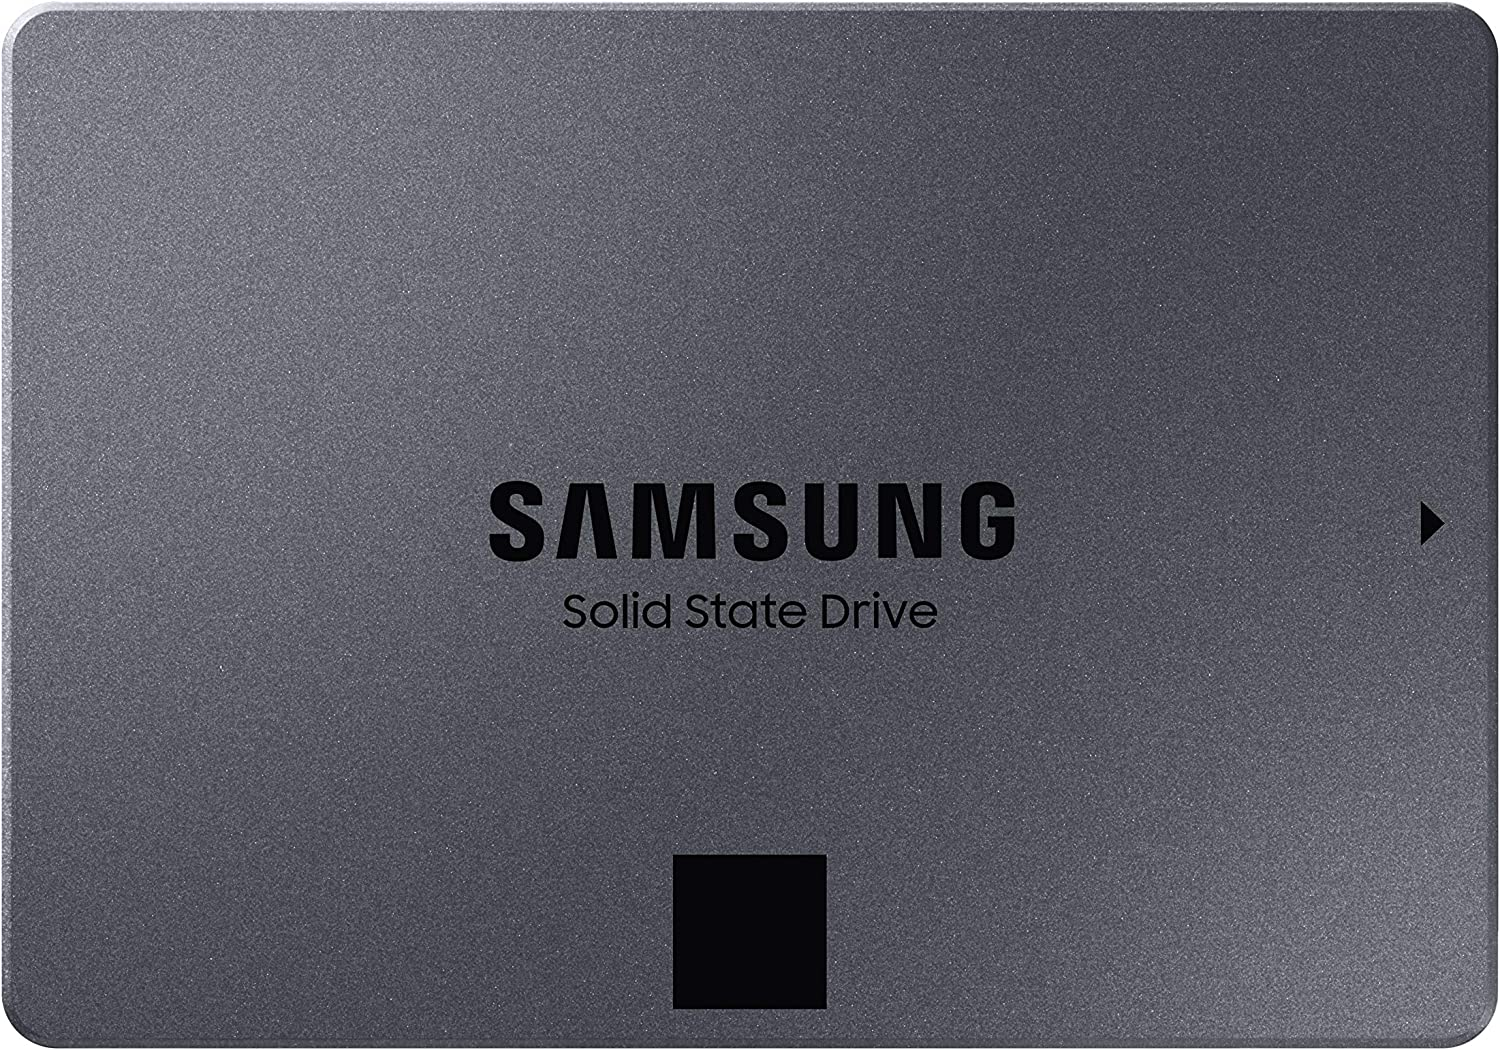 "SAMSUNG 870 QVO-Series 2.5"" SATA III Internal SSD Single Unit Version 1TB (MZ-77Q1T0B/AM)"